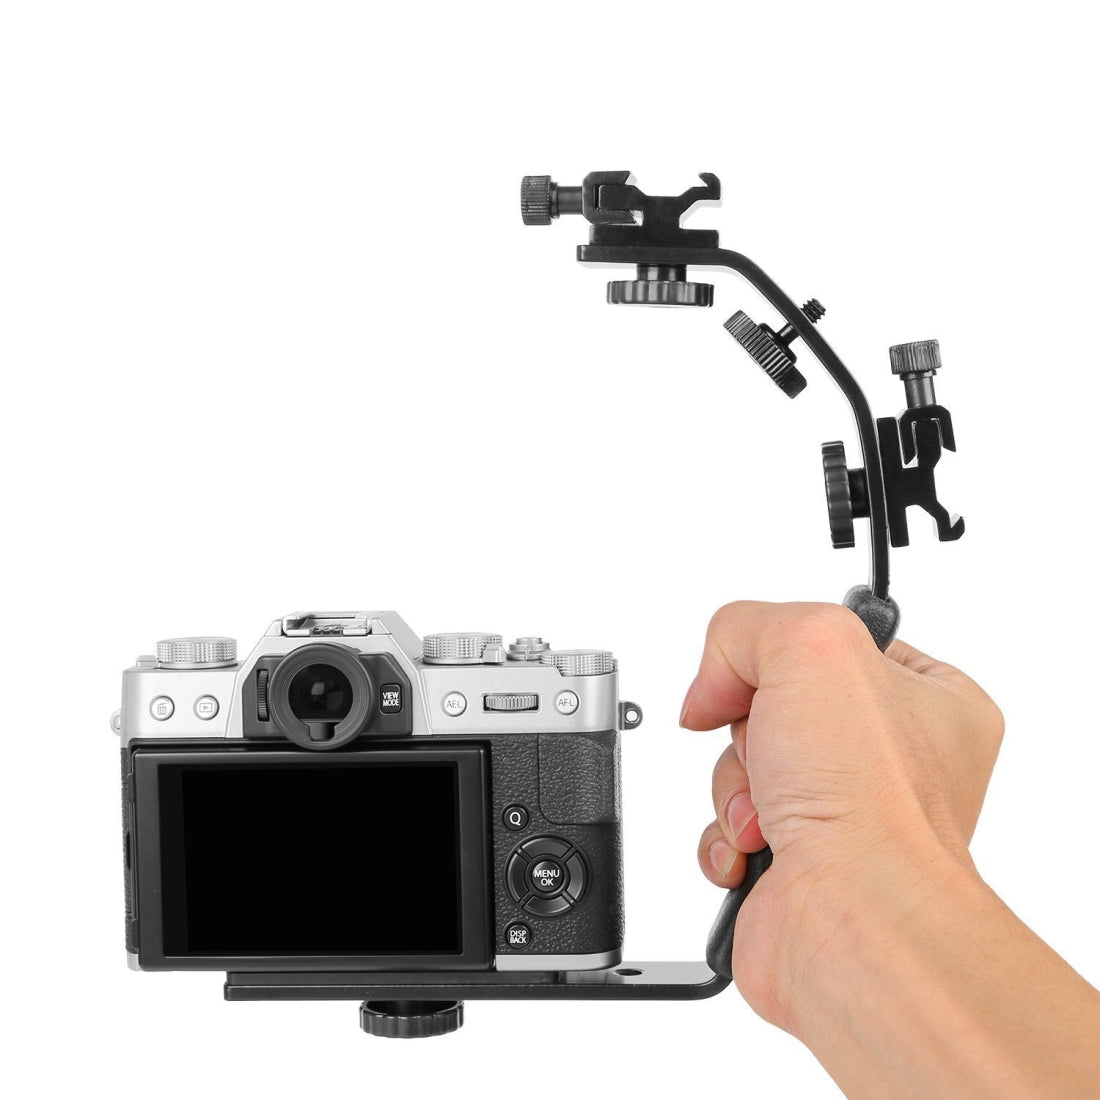 L-Shaped Aluminum Flash Bracket Camera Holder (Black)